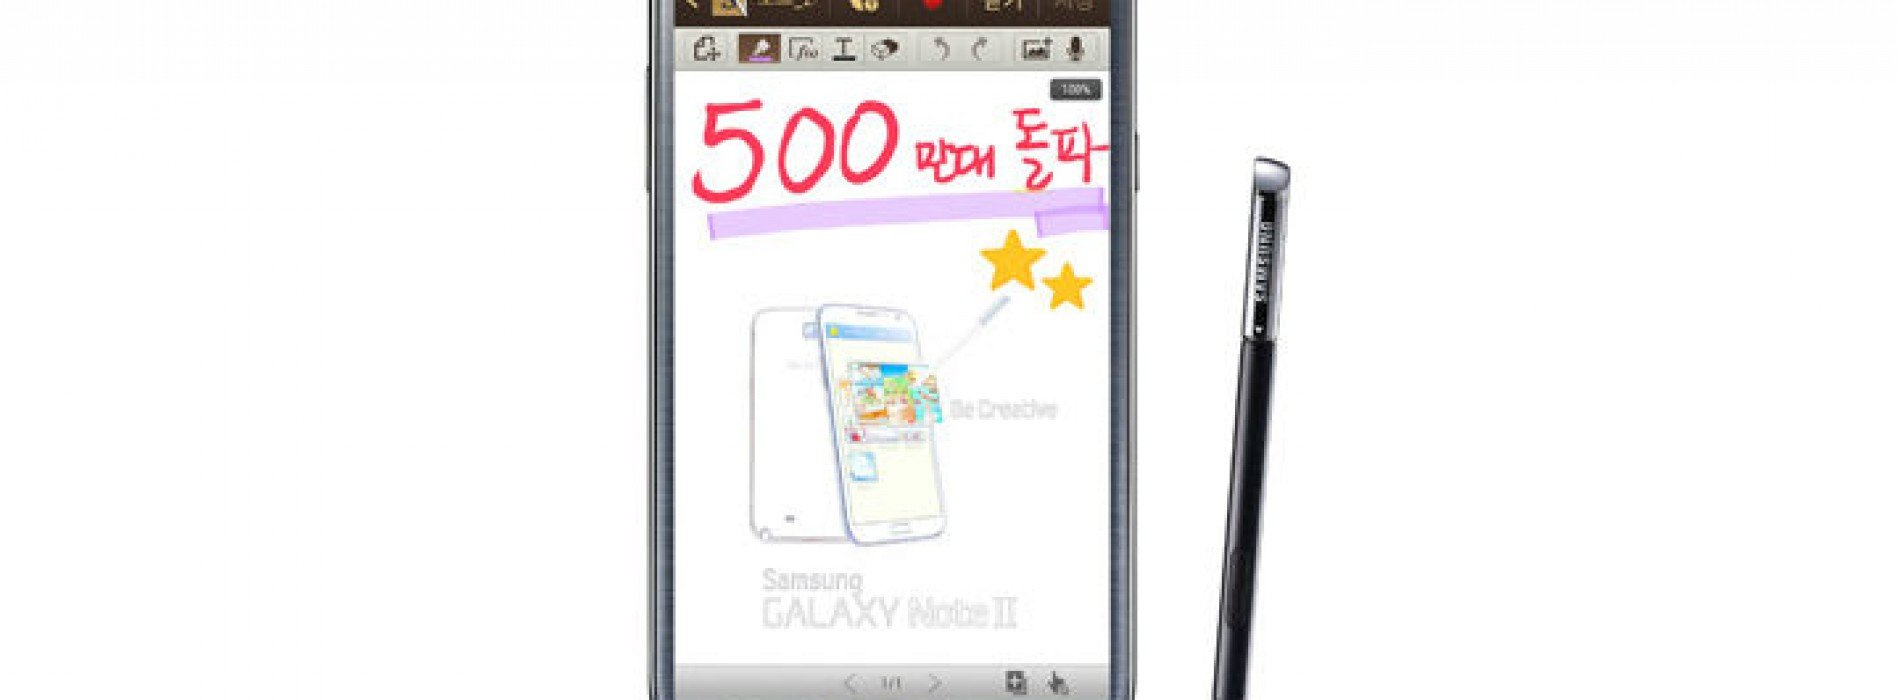 Samsung moves 5 million Galaxy Note II's around the world